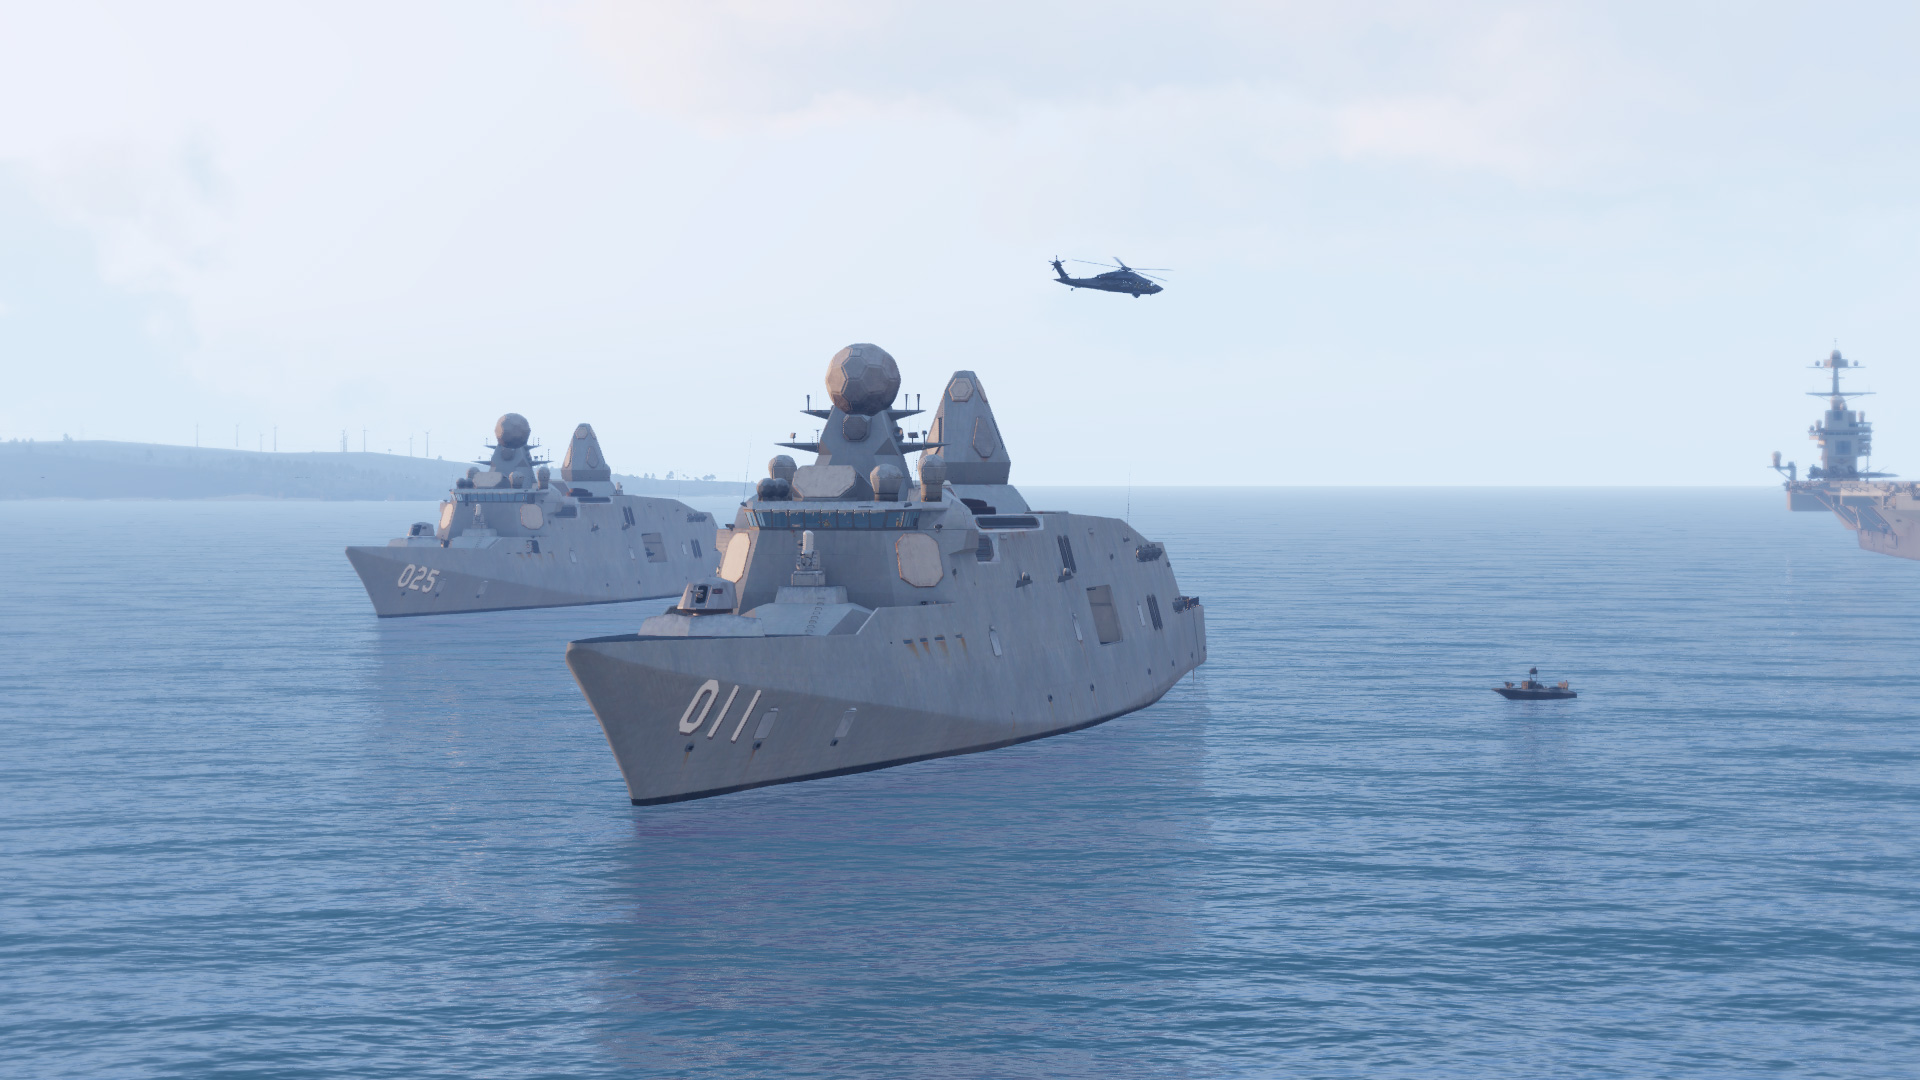 dev.arma3.com/assets/img/post/images/NATO_Destroyer_4.jpg